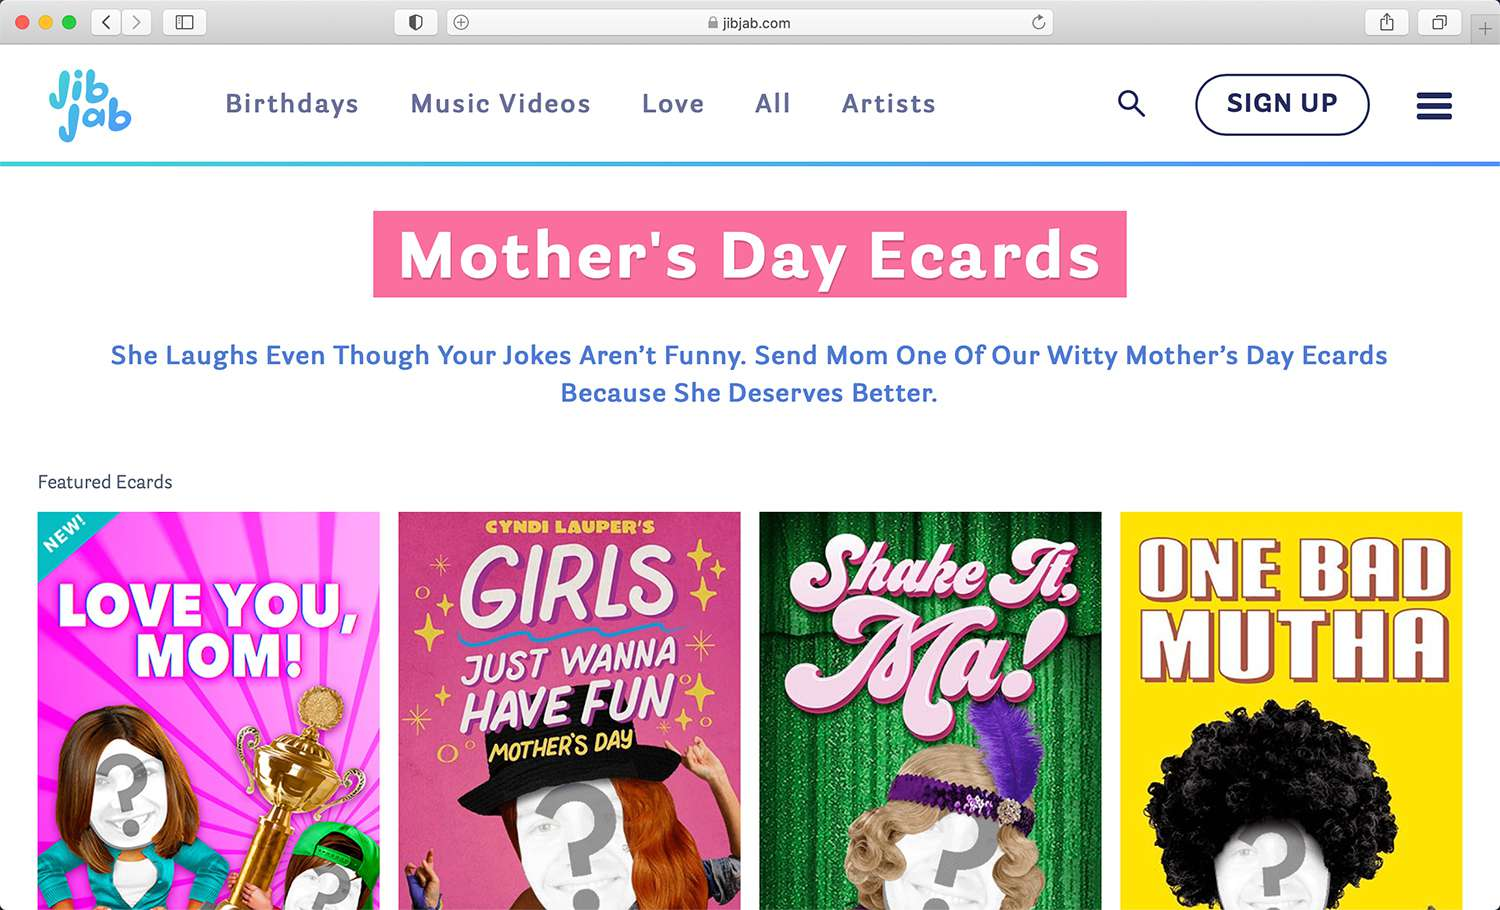 JibJab video e-card website for Mother's Day and more